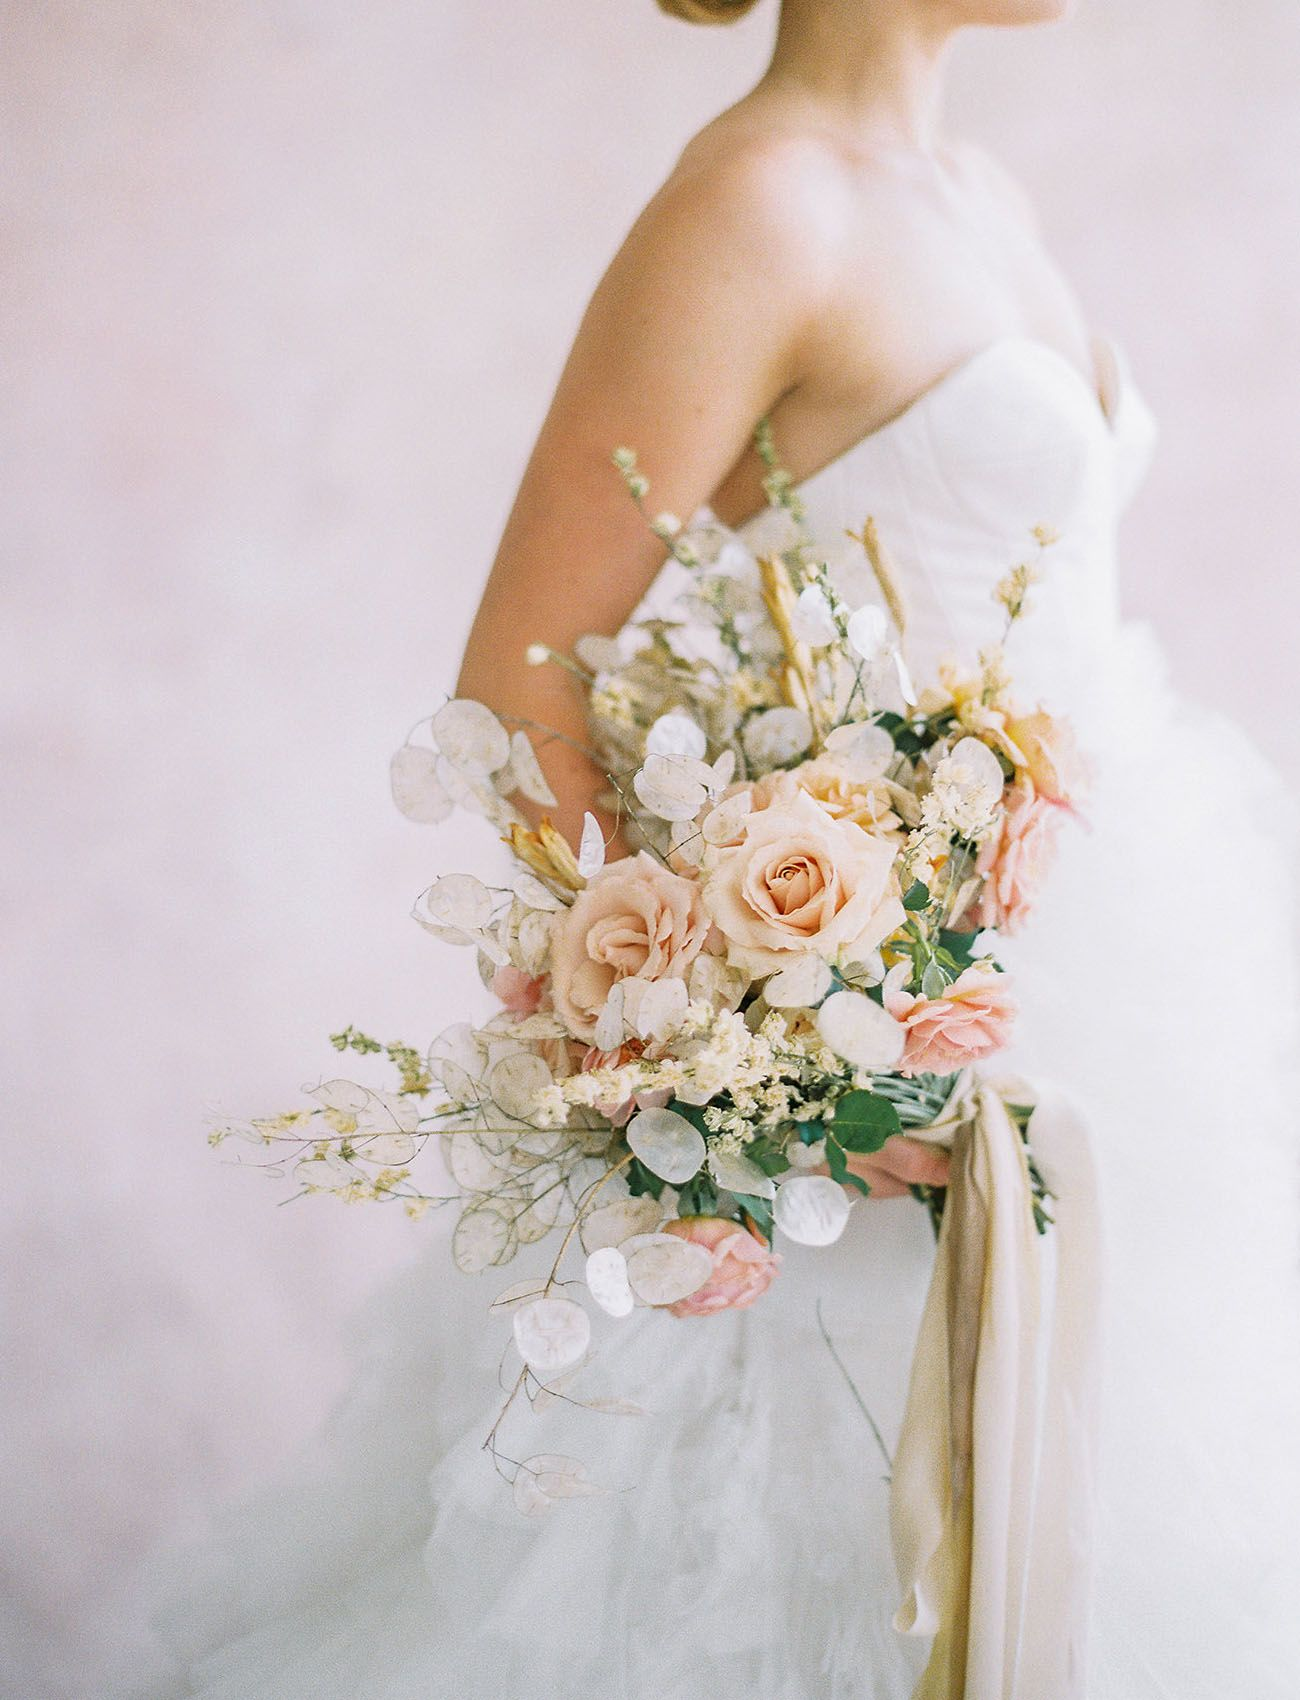 Inspiration for a beautifully blush moroccanstyle wedding green